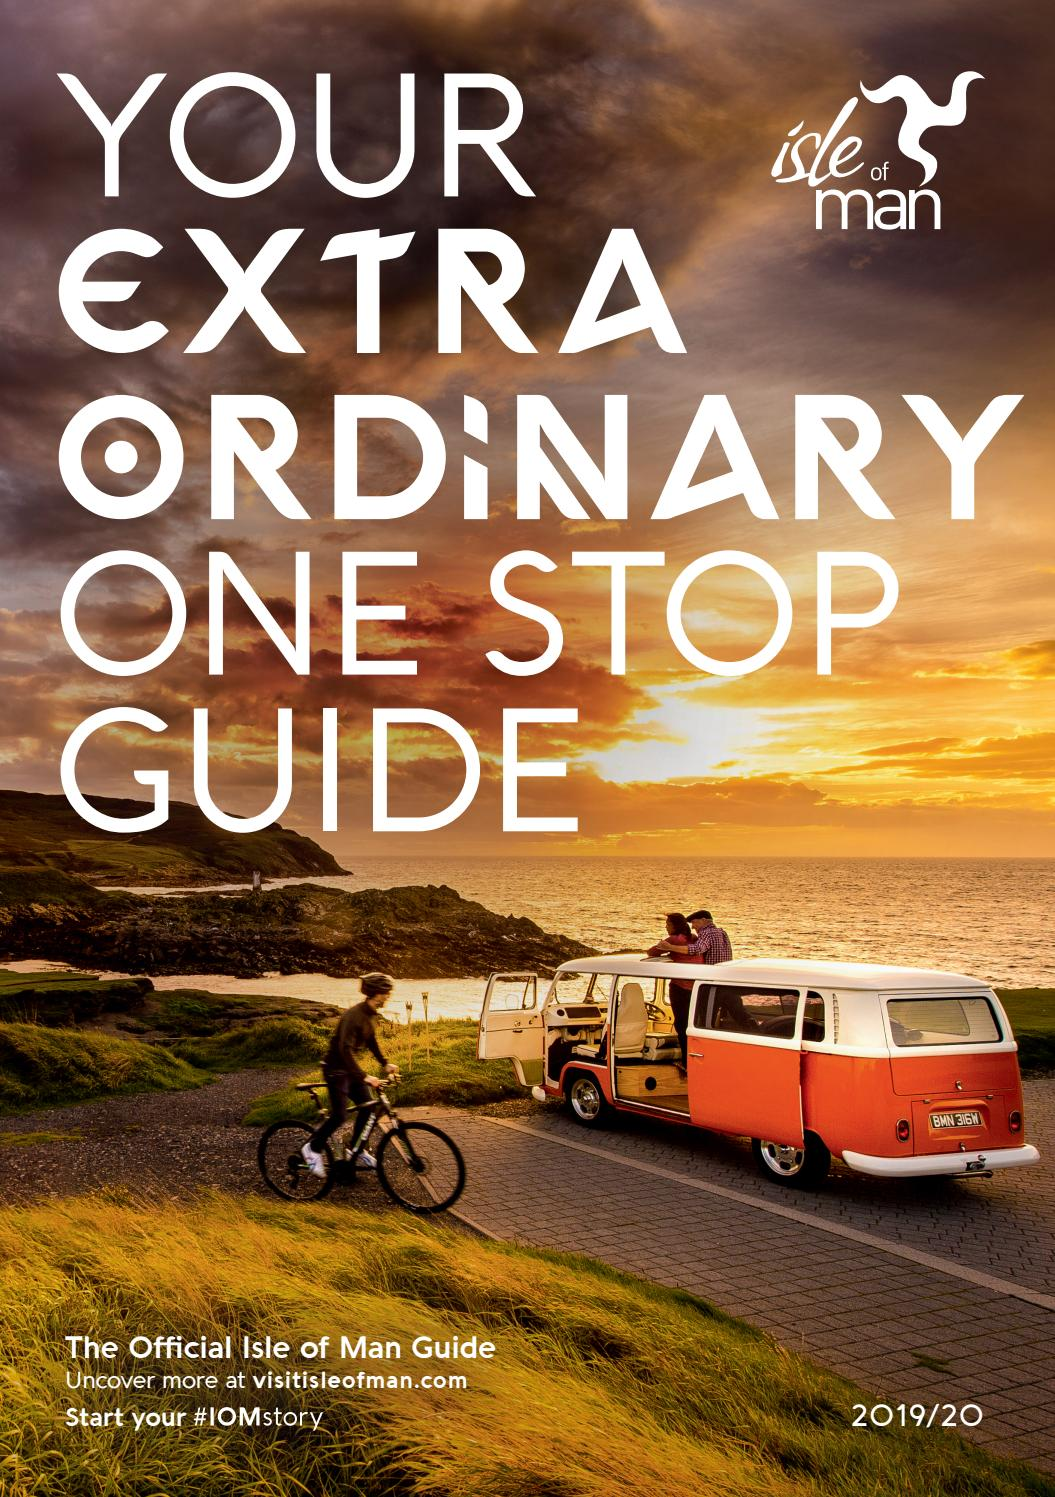 Isle of Man One Stop Guide 2019/2020 by Visit Isle of Man